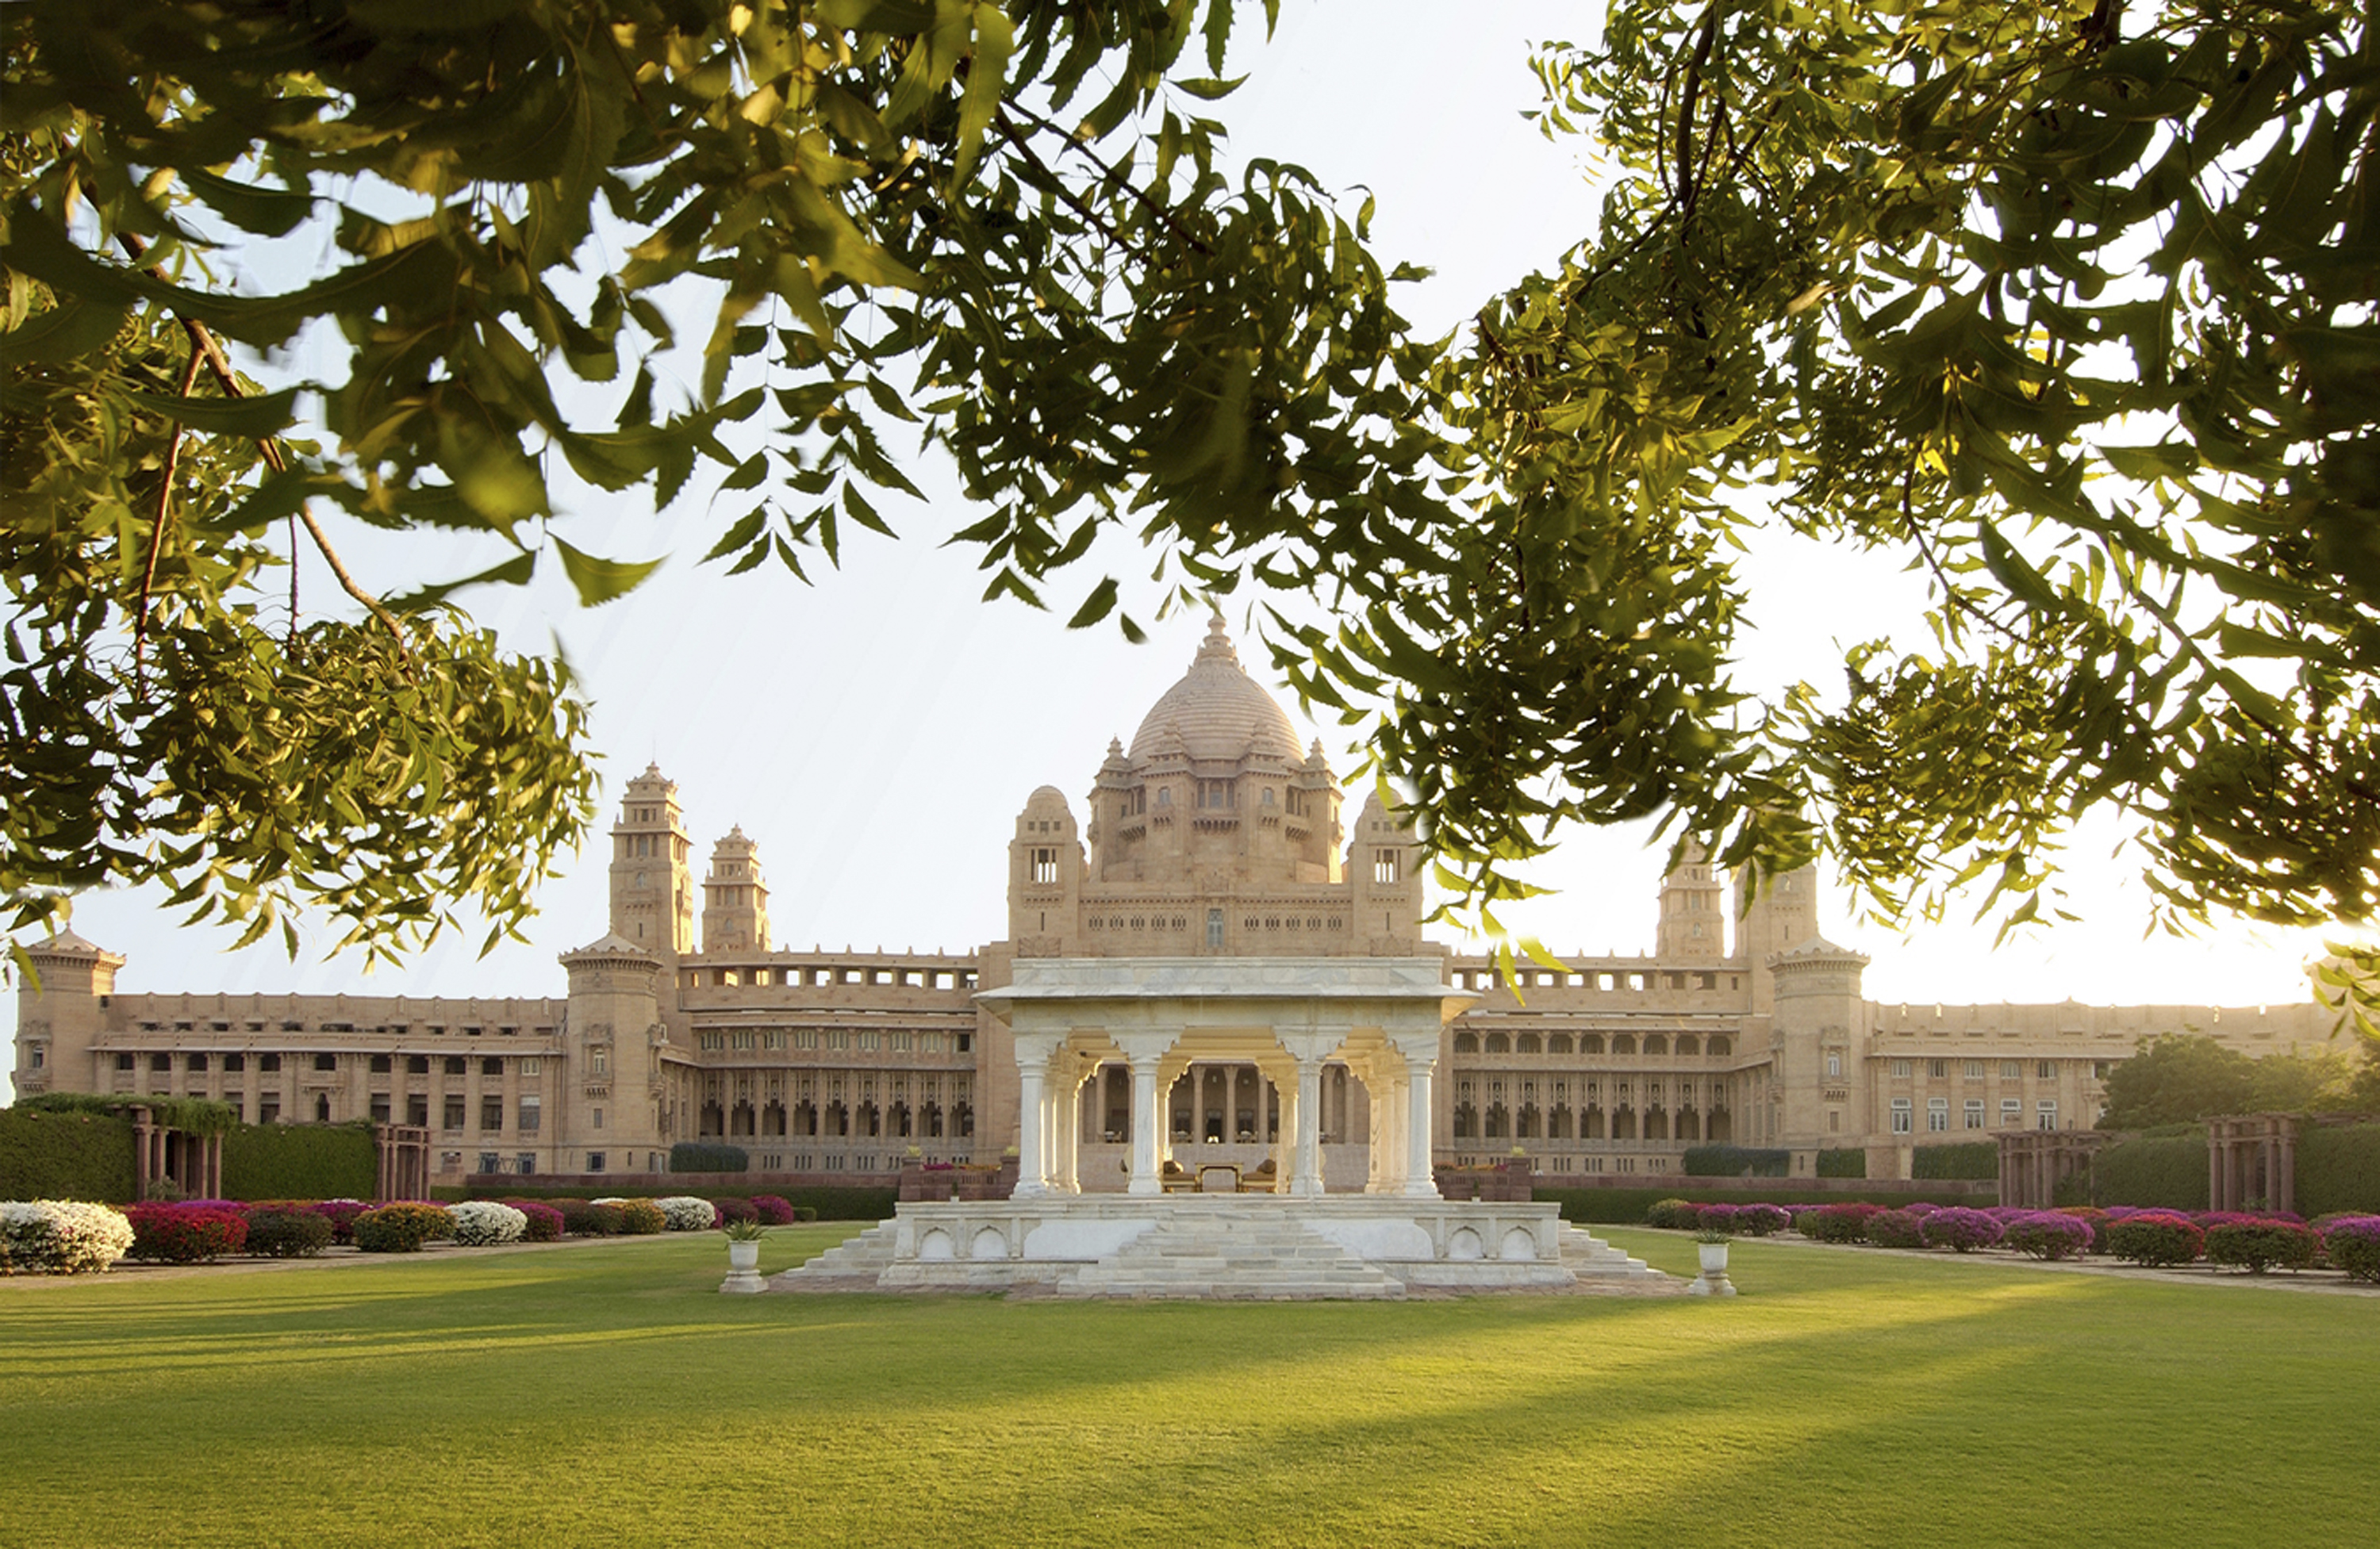 A general view of the Umaid Bhawan Palace where the Indian wedding of Priyanka Chopra and Nick Jonas took place. (Photo by Taj Hotel Resorts and Palaces via Getty Images)